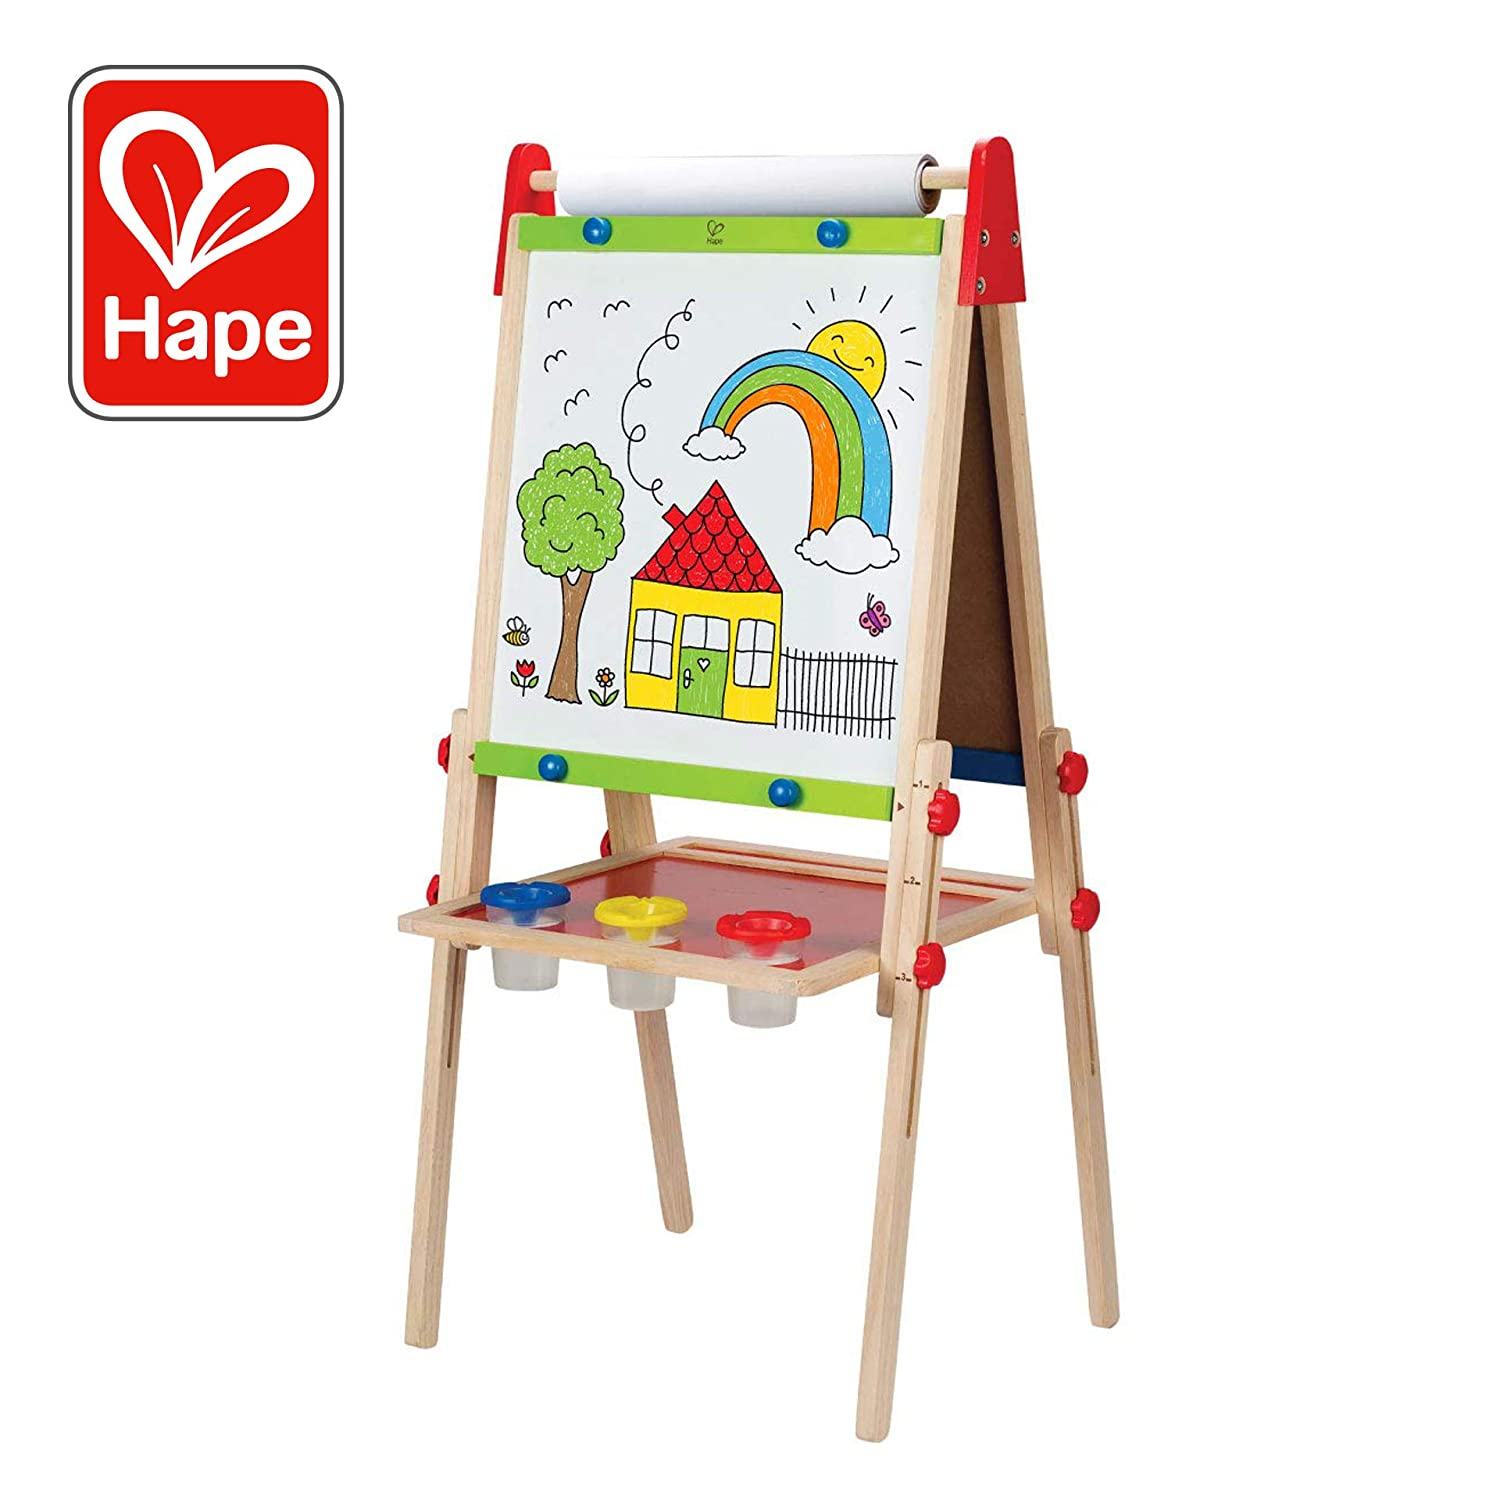 Top 7 Best Easel for Toddlers (2019 Reviews) 2